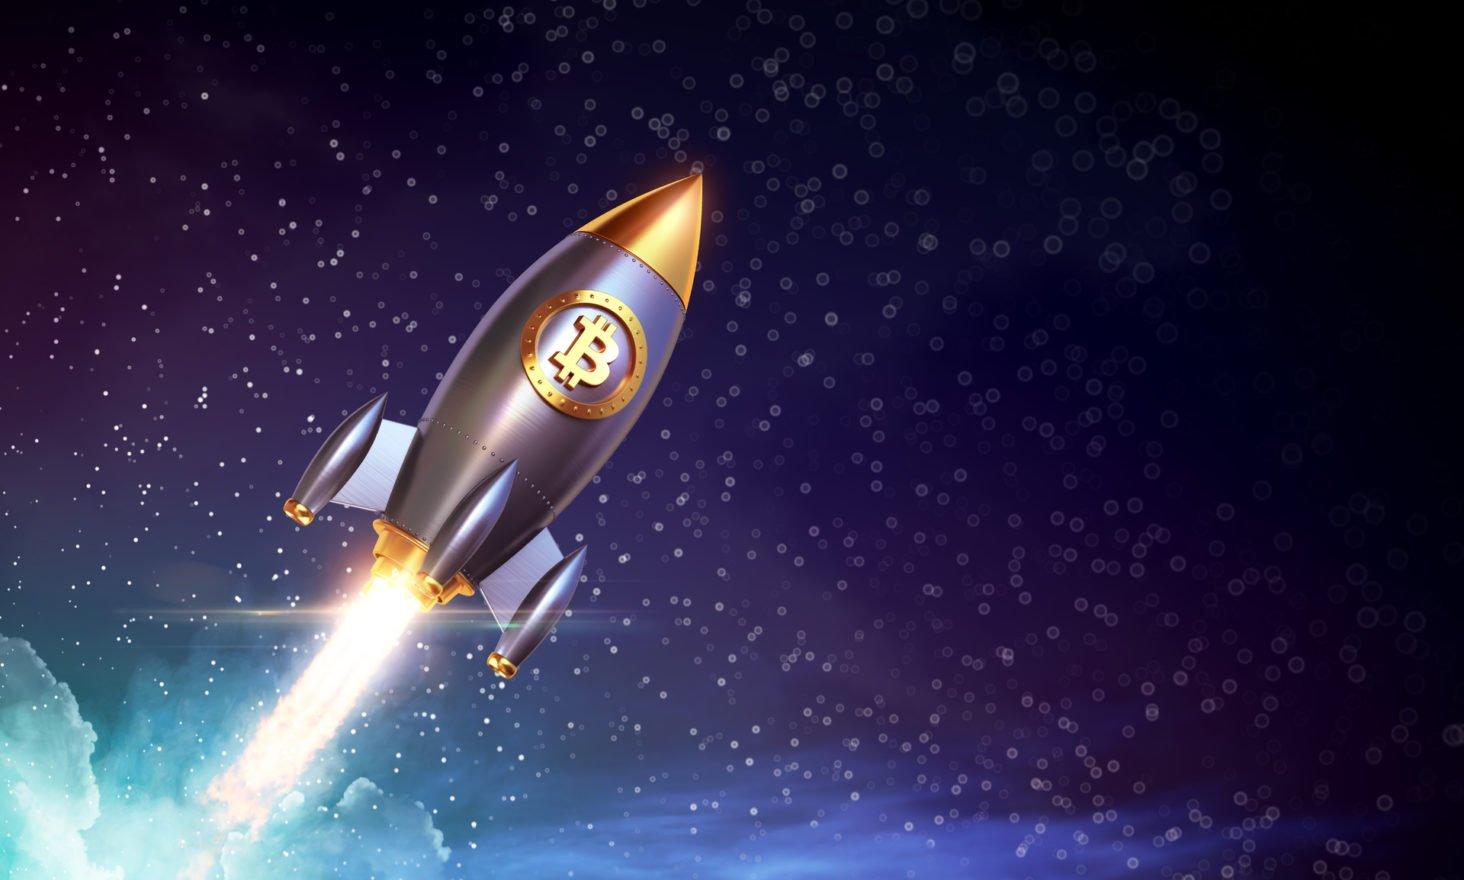 A New Day, a New Record – Bitcoin Blazes past the $16,000 Mark